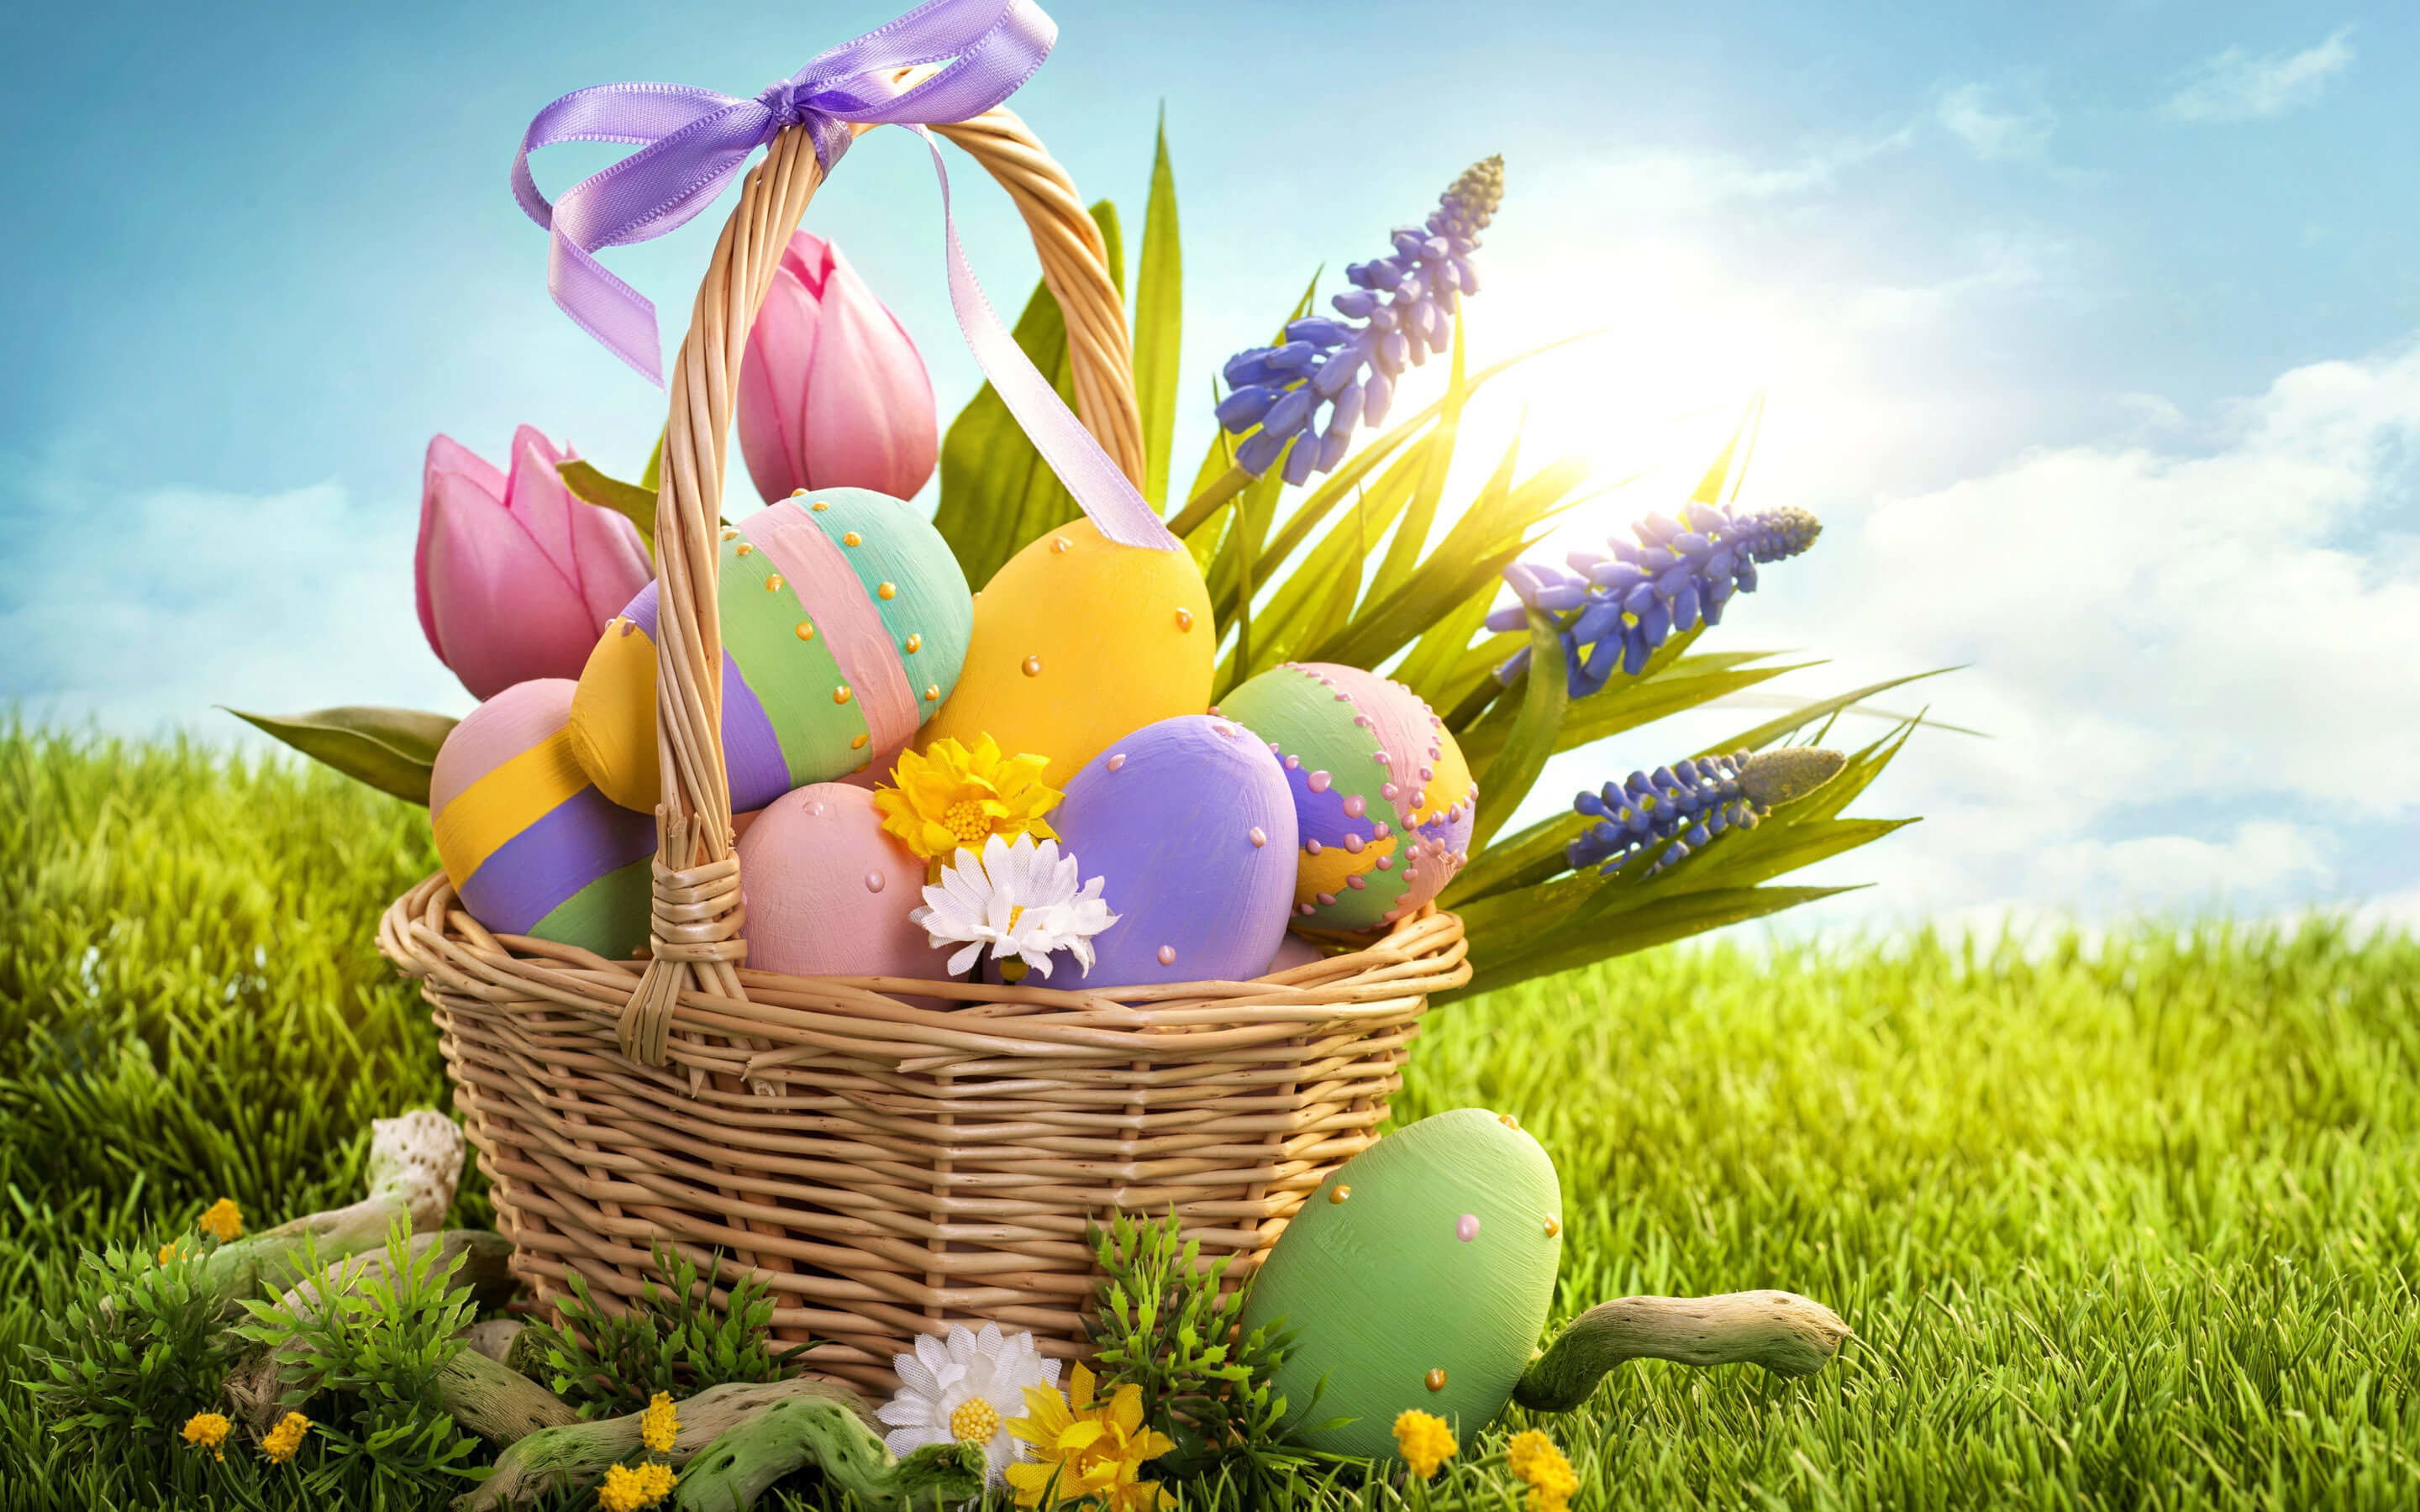 Easter background pictures 54 images - Religious easter wallpaper ...